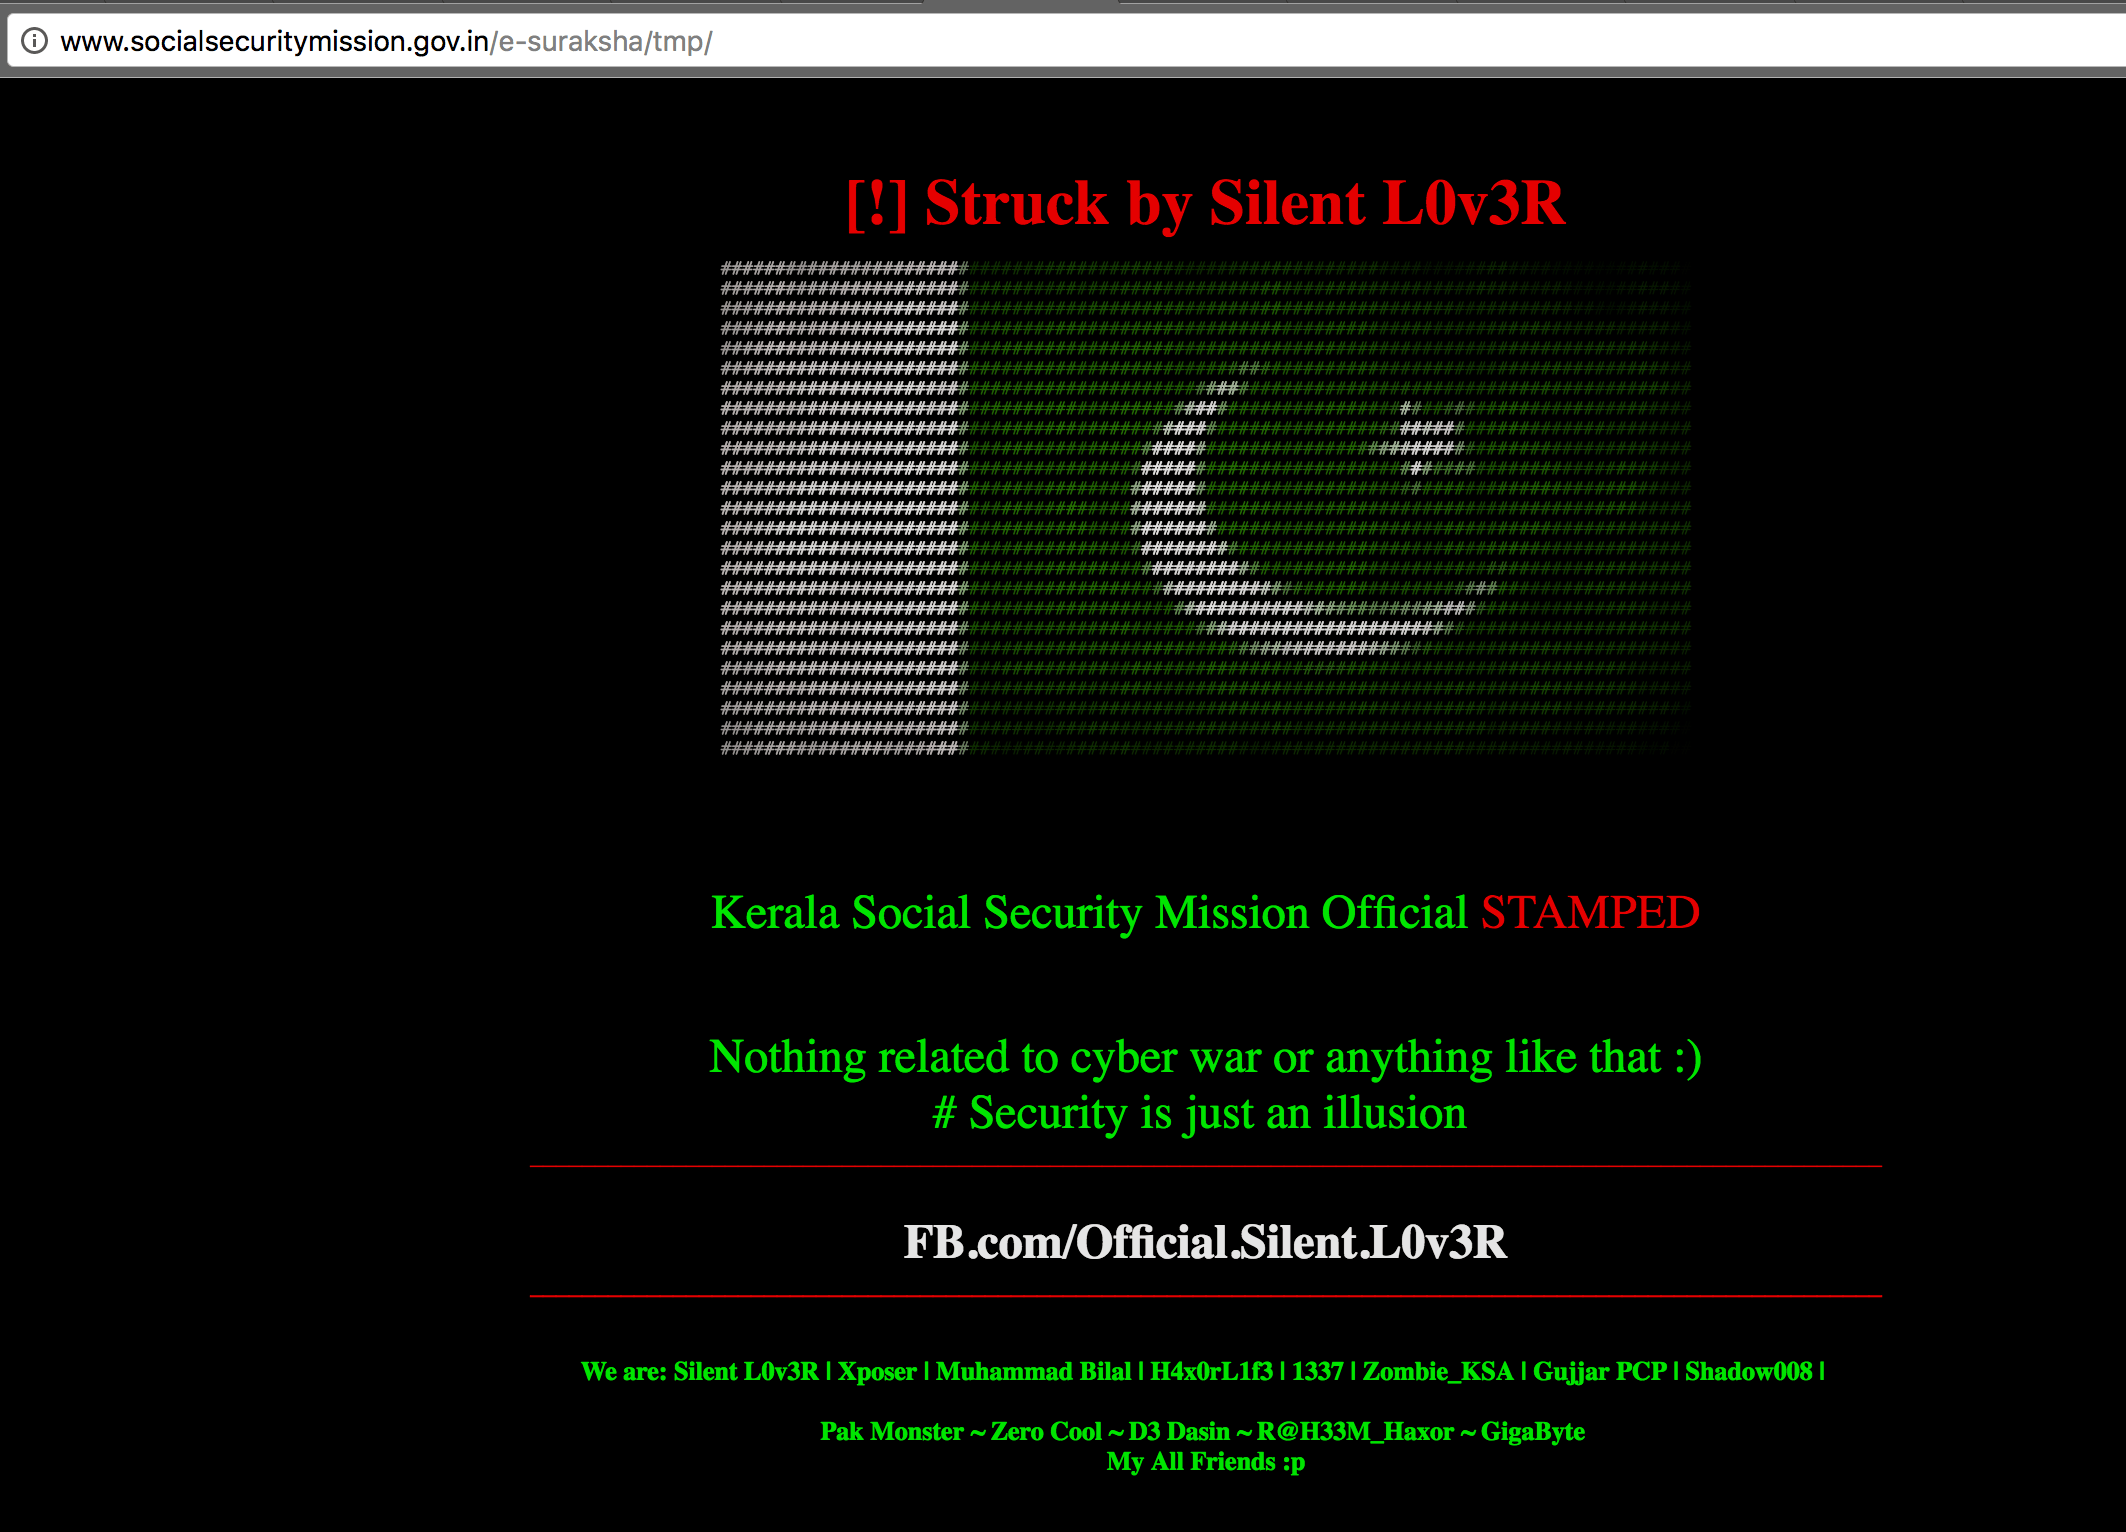 Kerala Social Security Mission Hacked